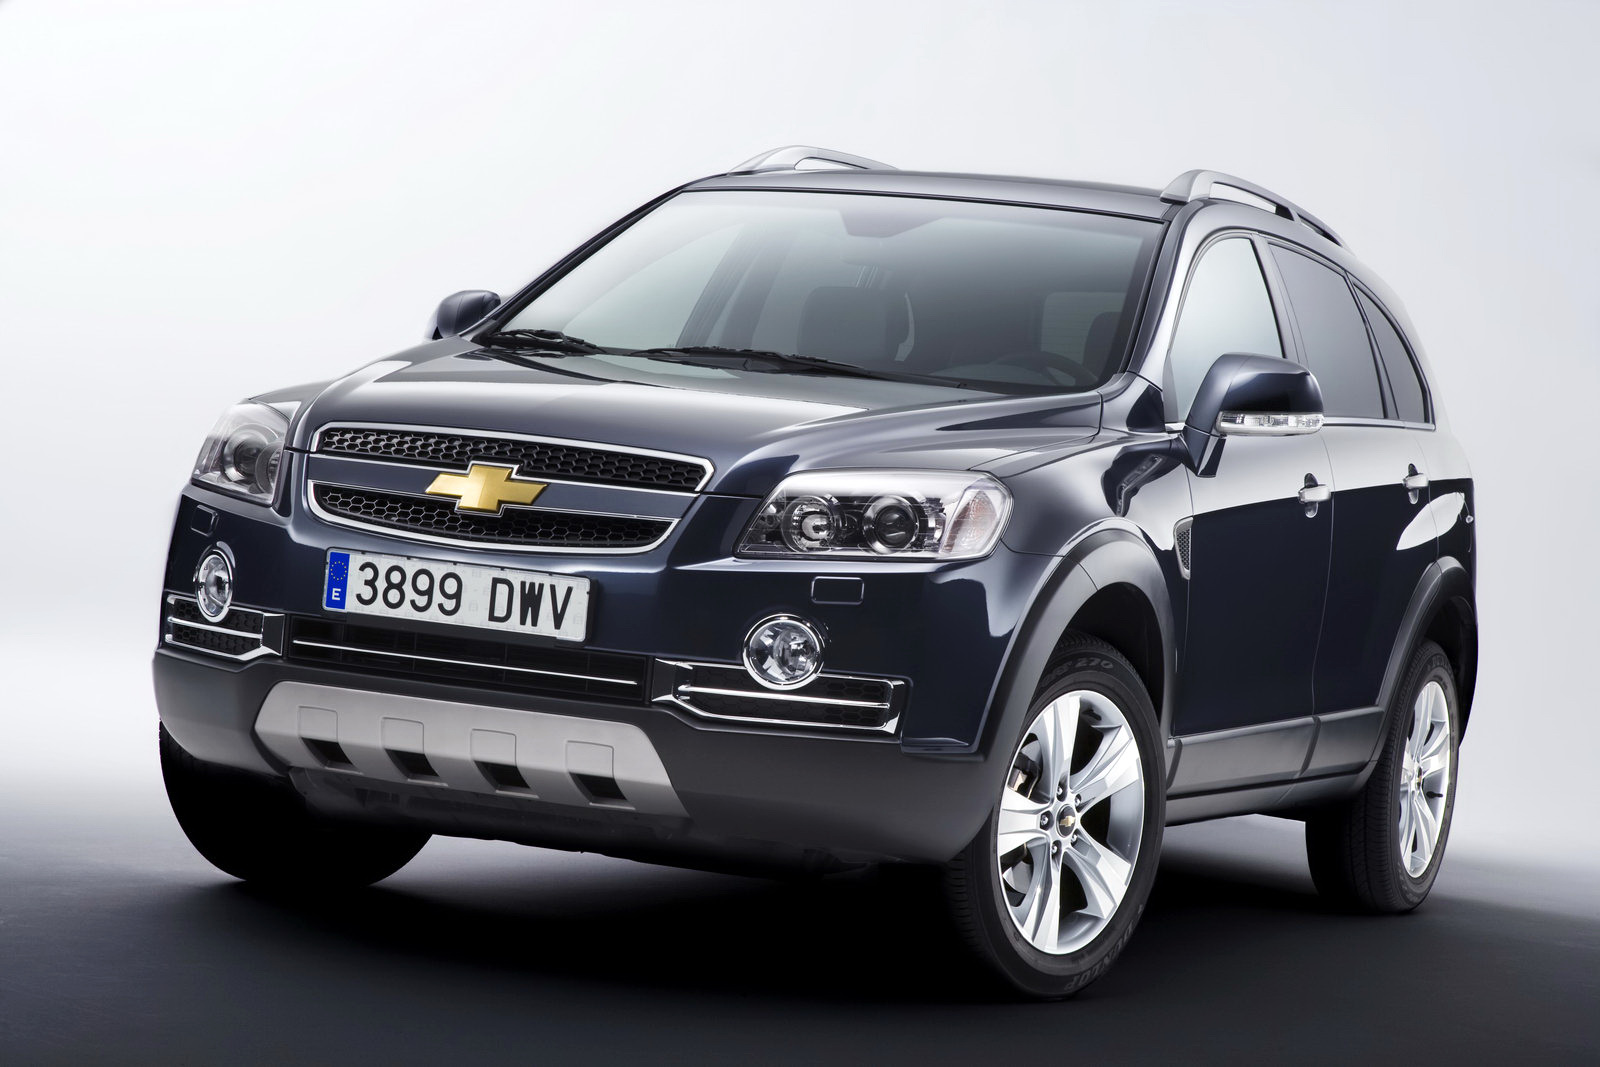 Spy Shots 2011 Chevrolet Holden Captiva Suv With Aveo